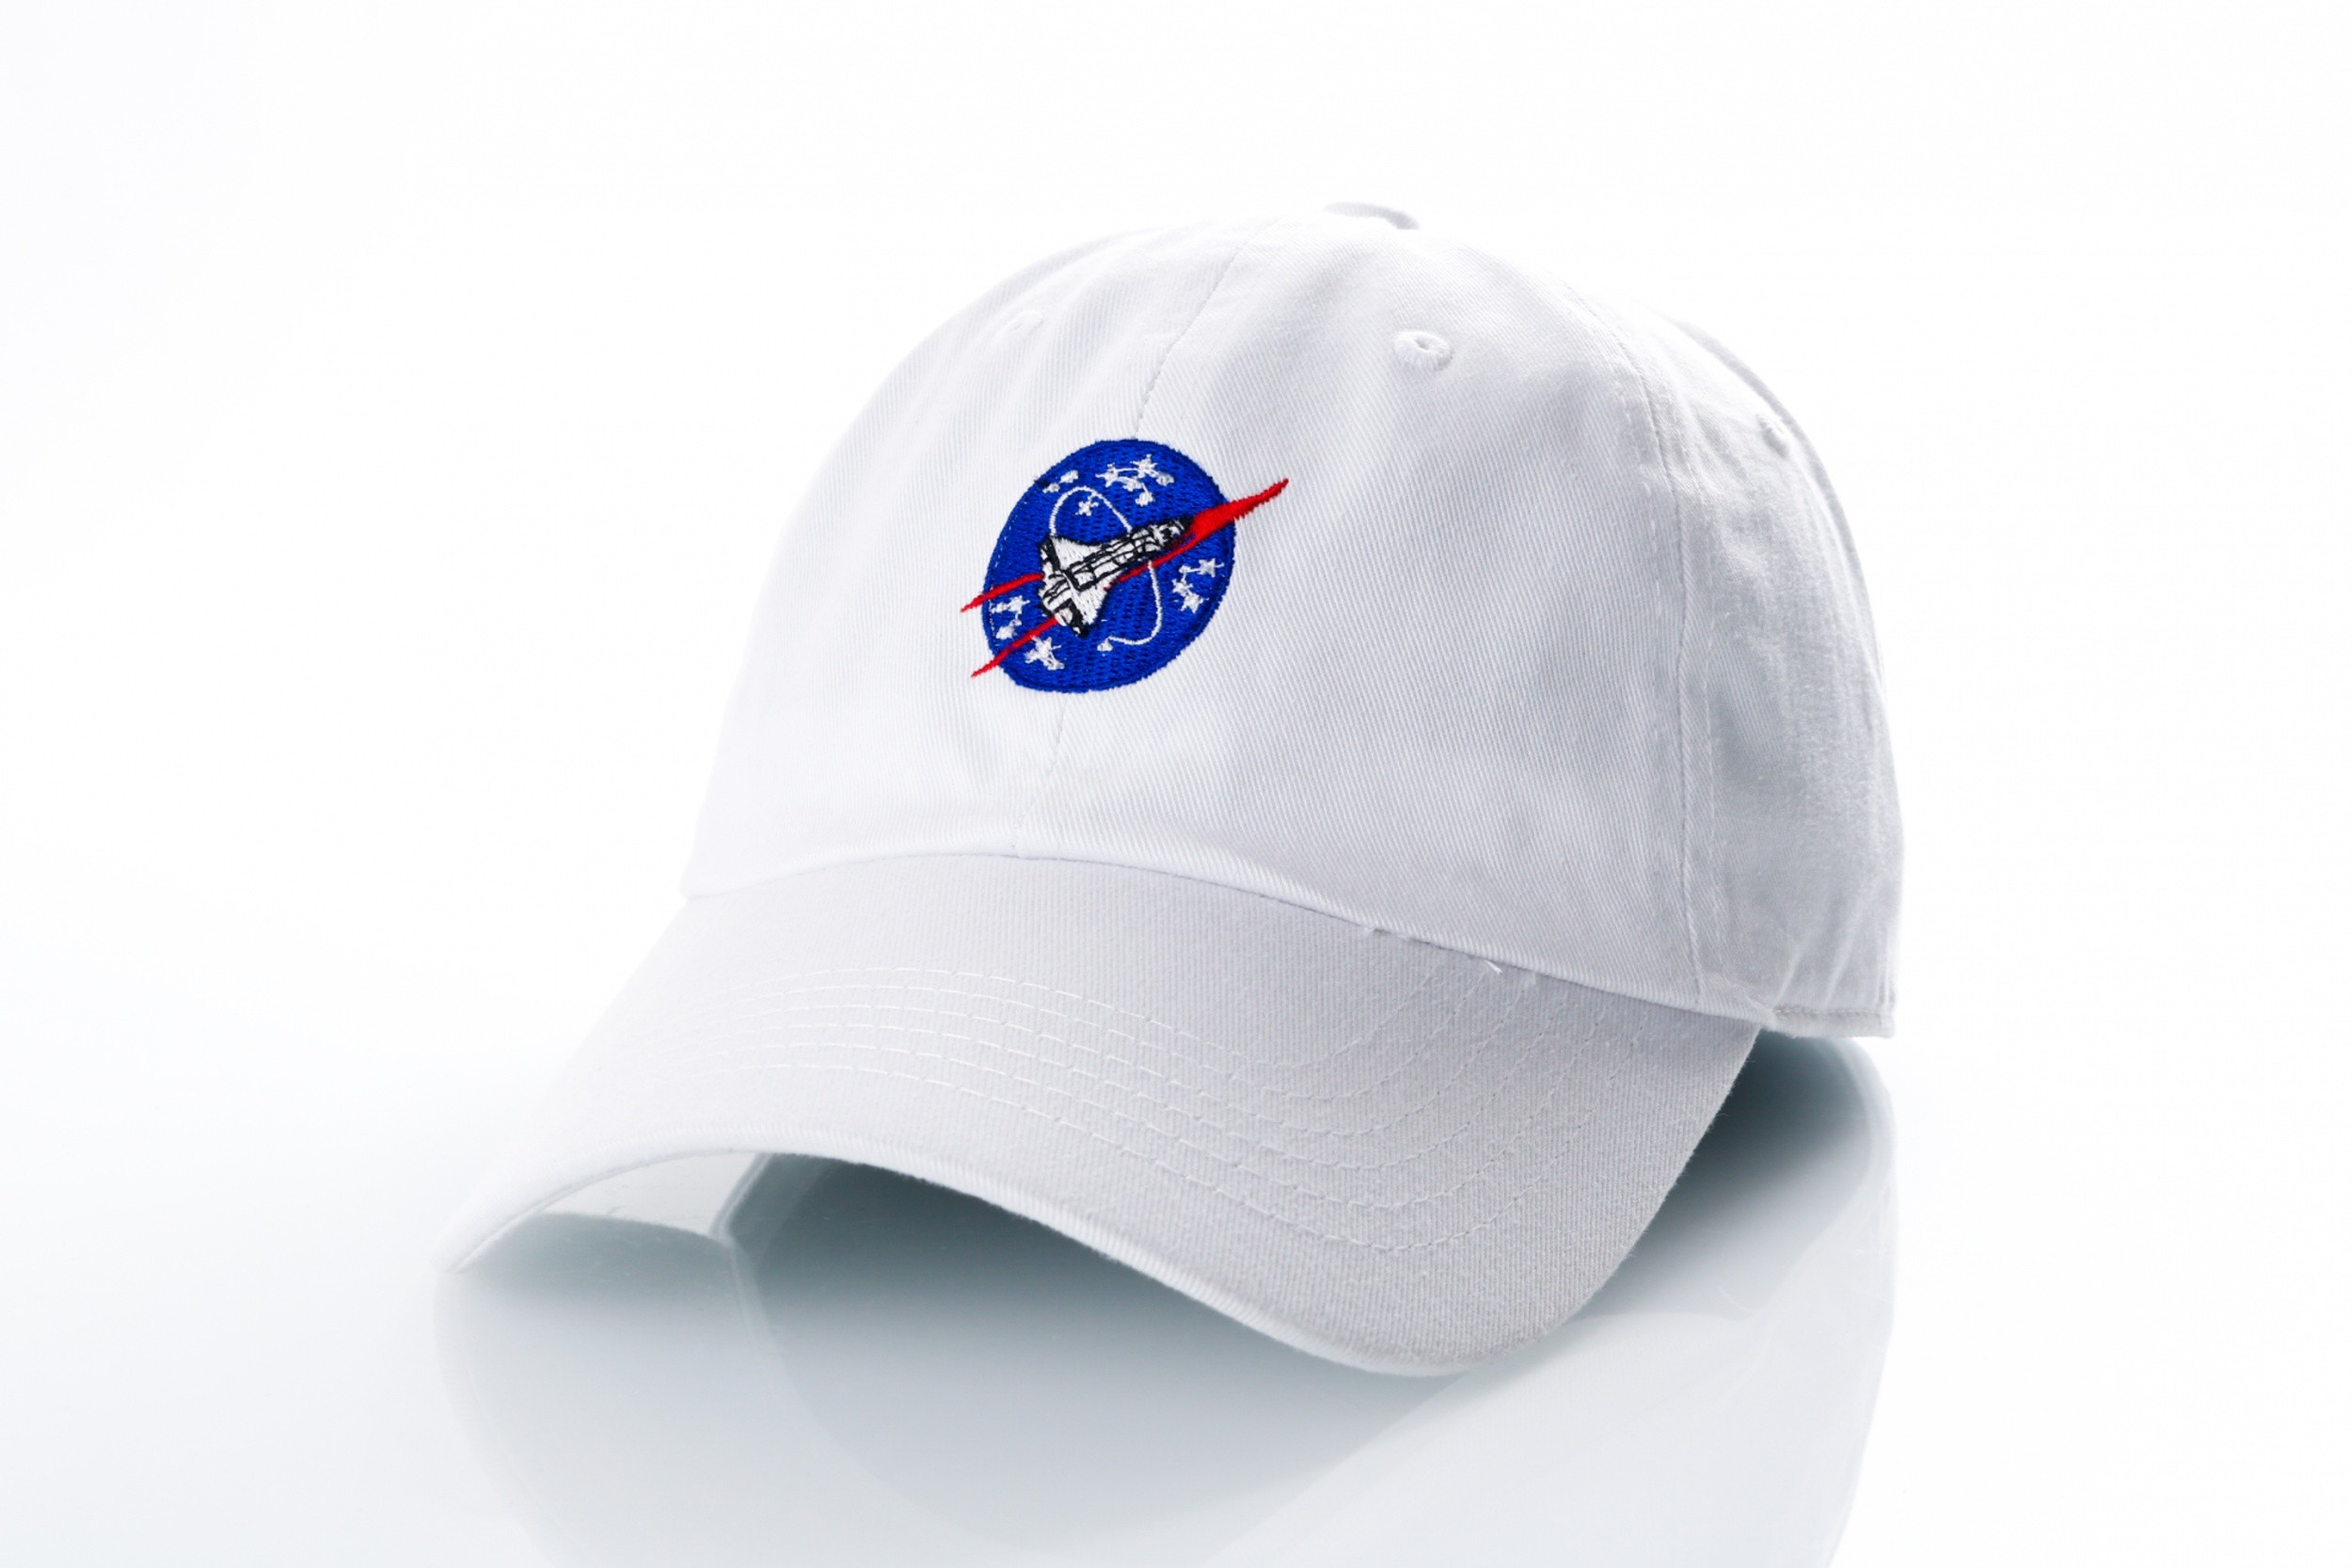 Foto van Ethos Space KBSV-036 white KBSV-036 dad cap white